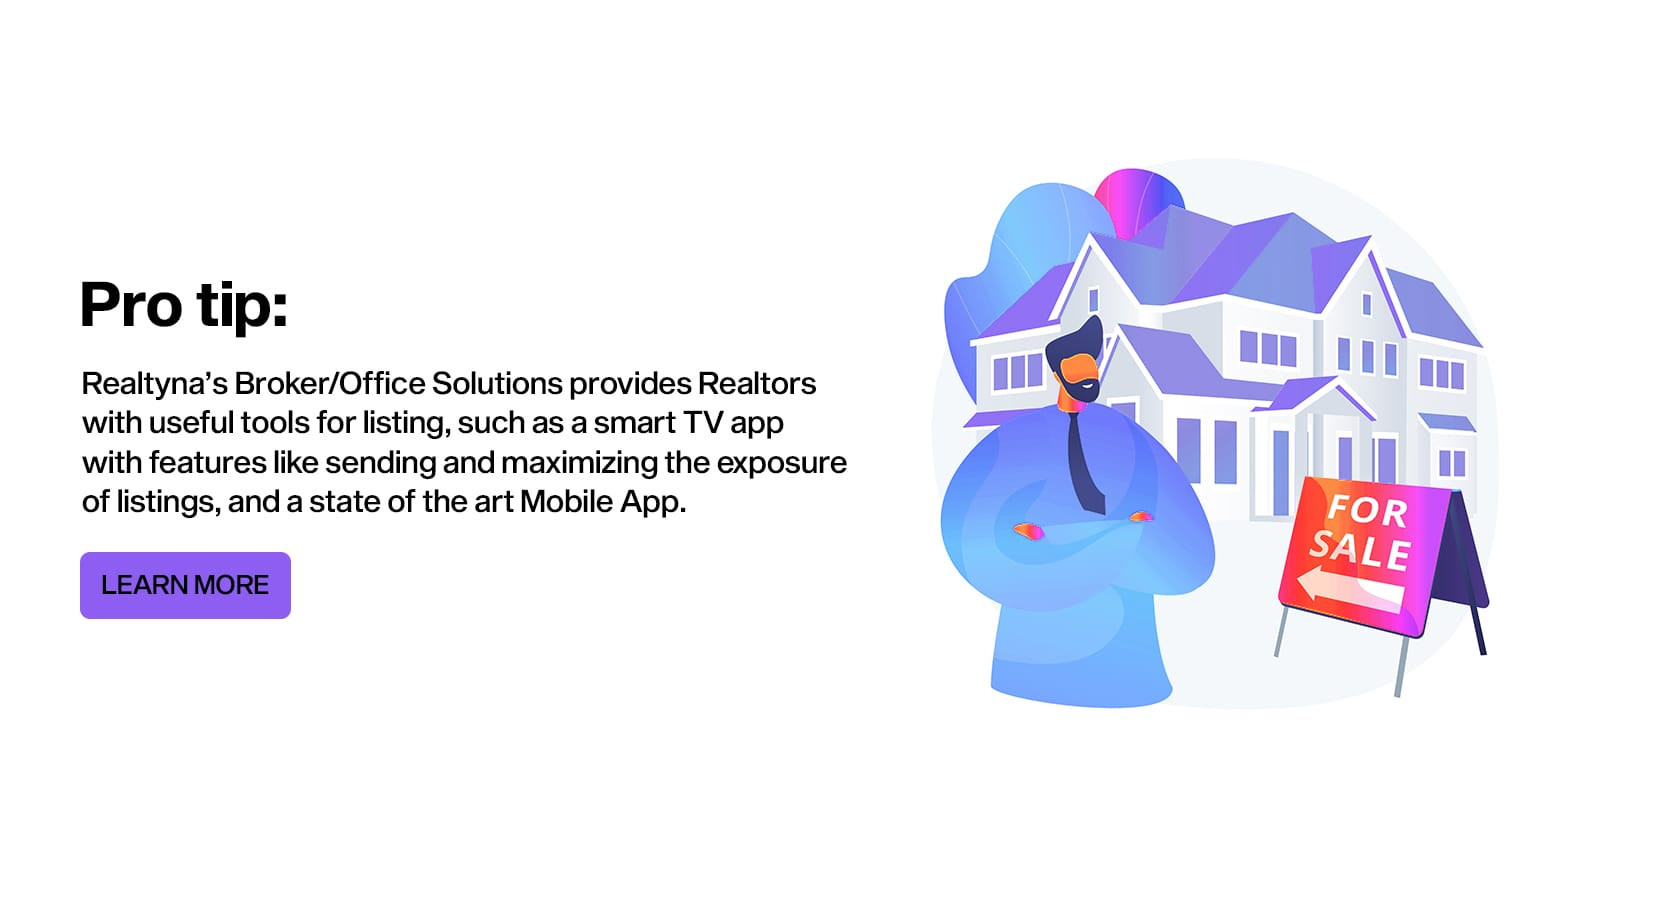 Realtyna's Broker/Office Solutions